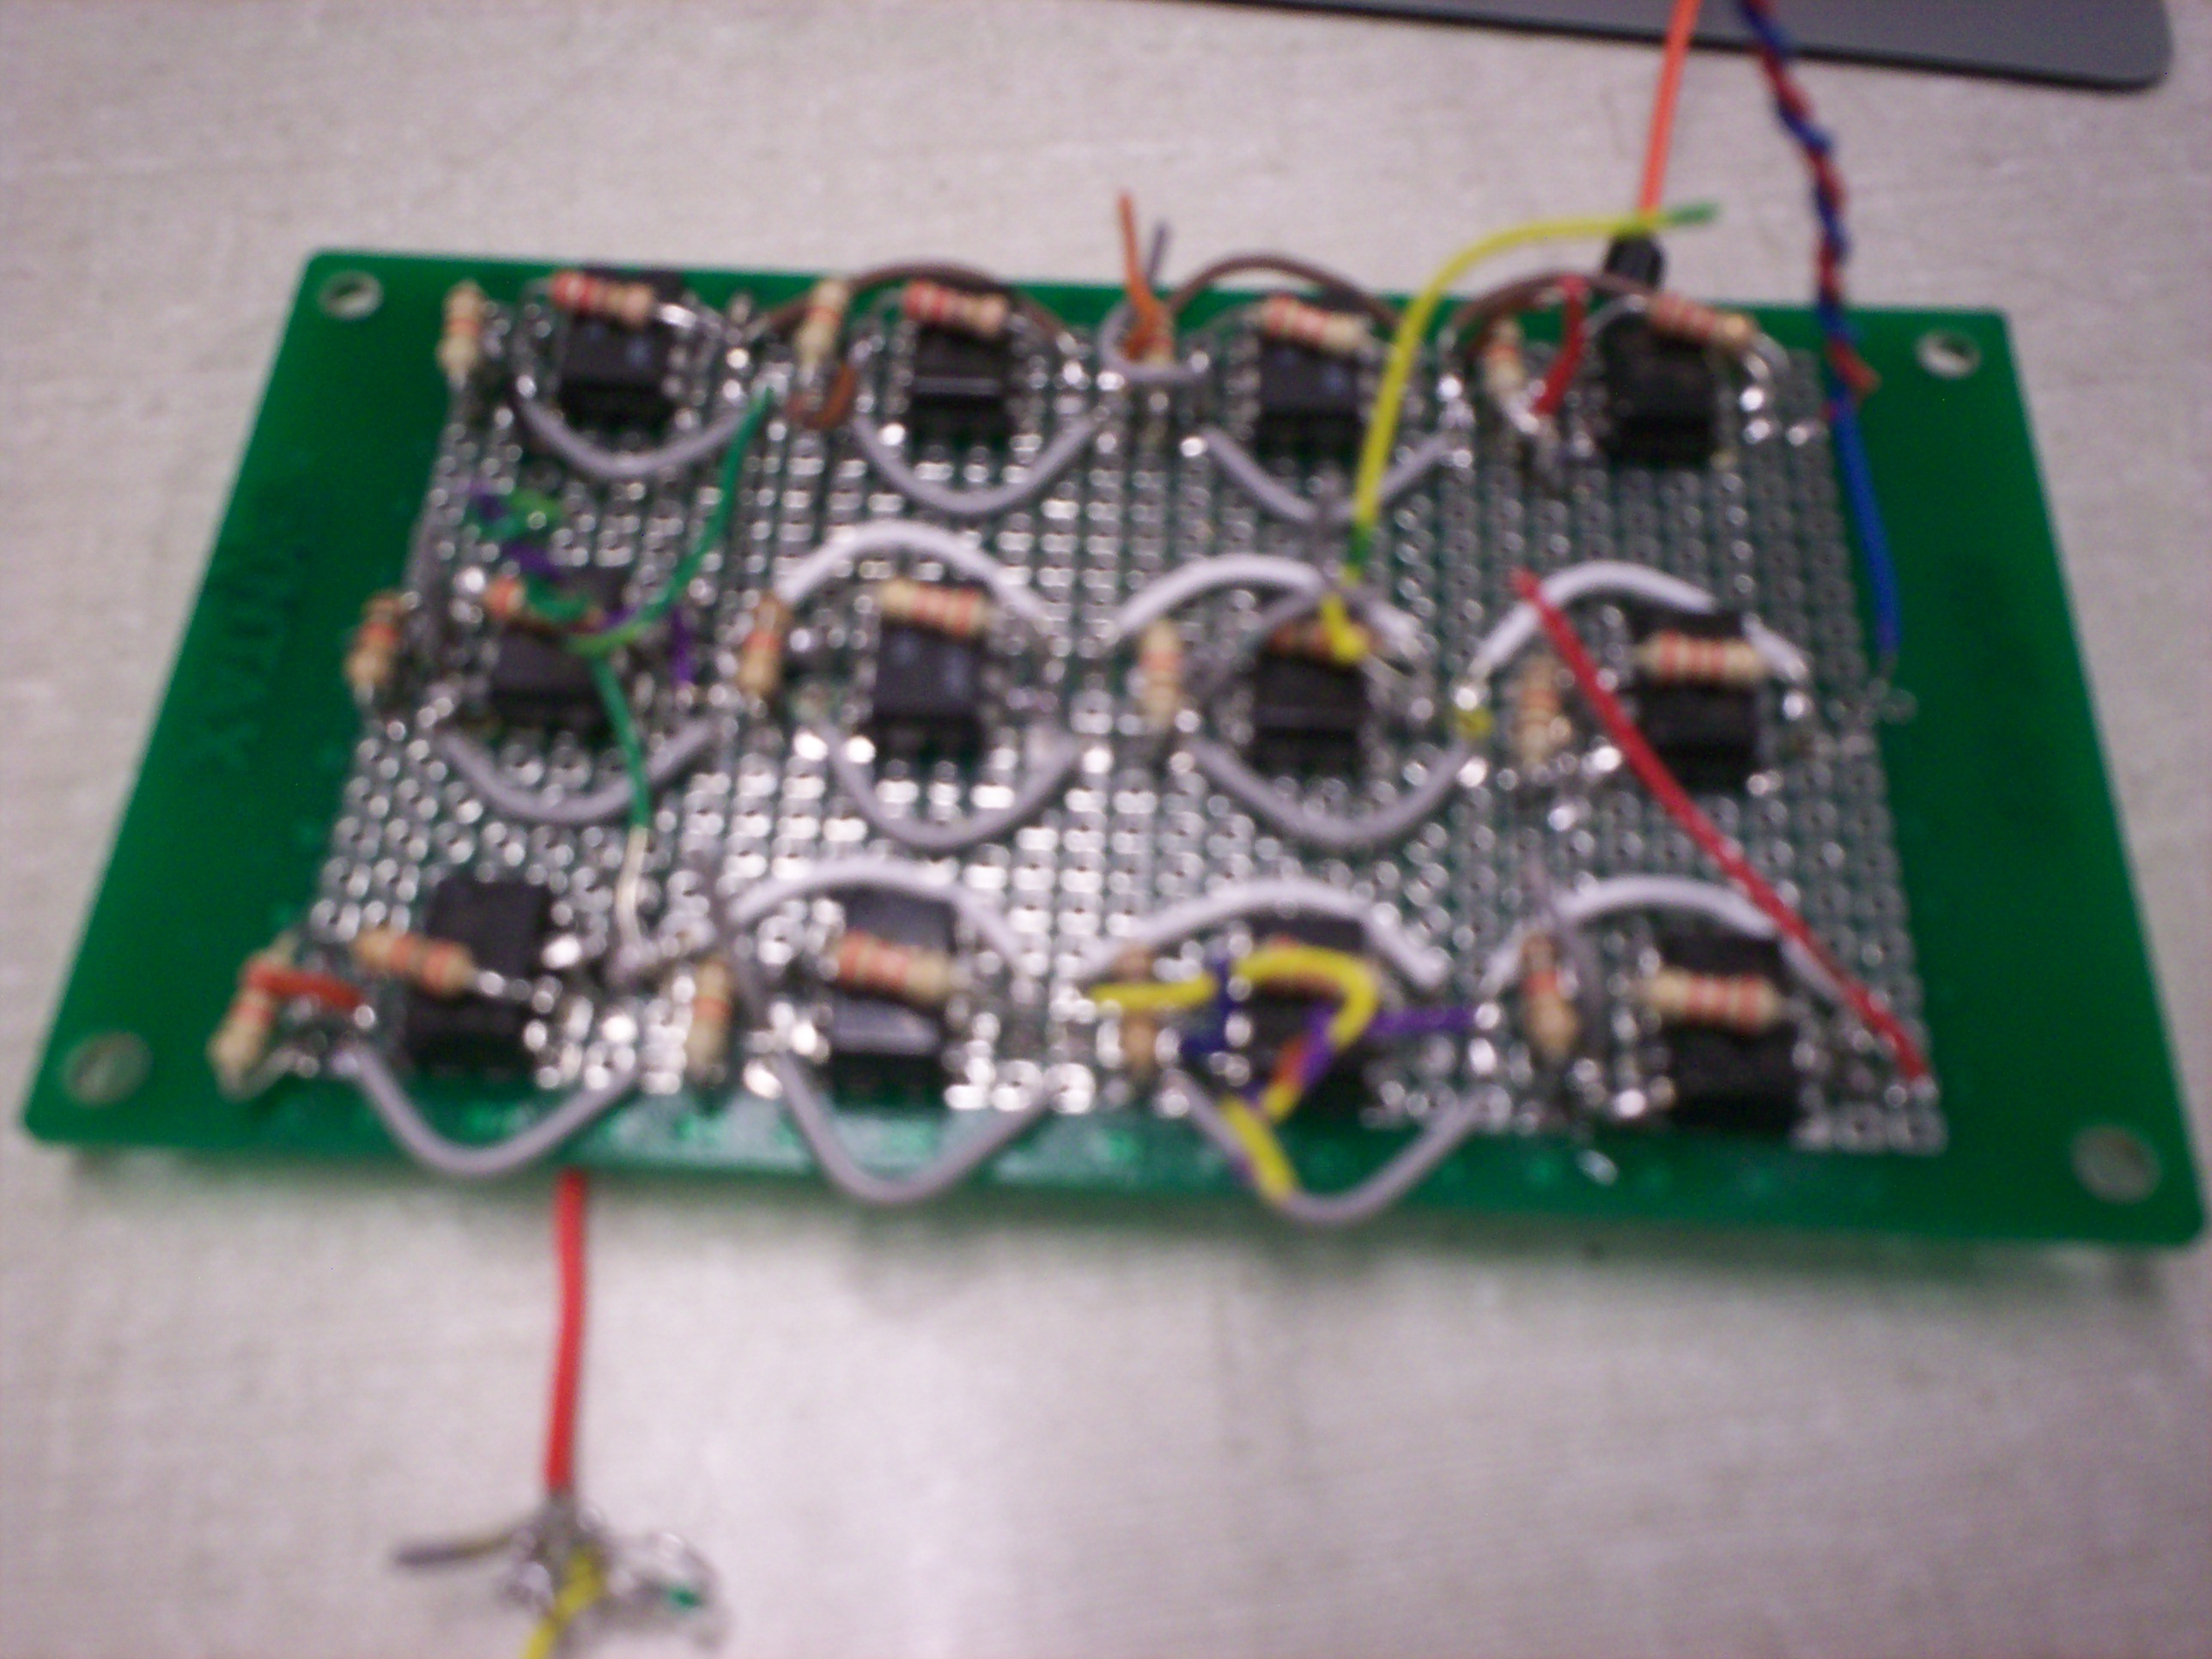 Christopher Poluski Lab Notebook Op Amp Inverting Buffer With Opamps Electrical Engineering Stack Result In 4 Broken Amps I Will Need To Better Check For Pins That Not Conected Or Potential Shorts The Board Tomorrow Here Is Array